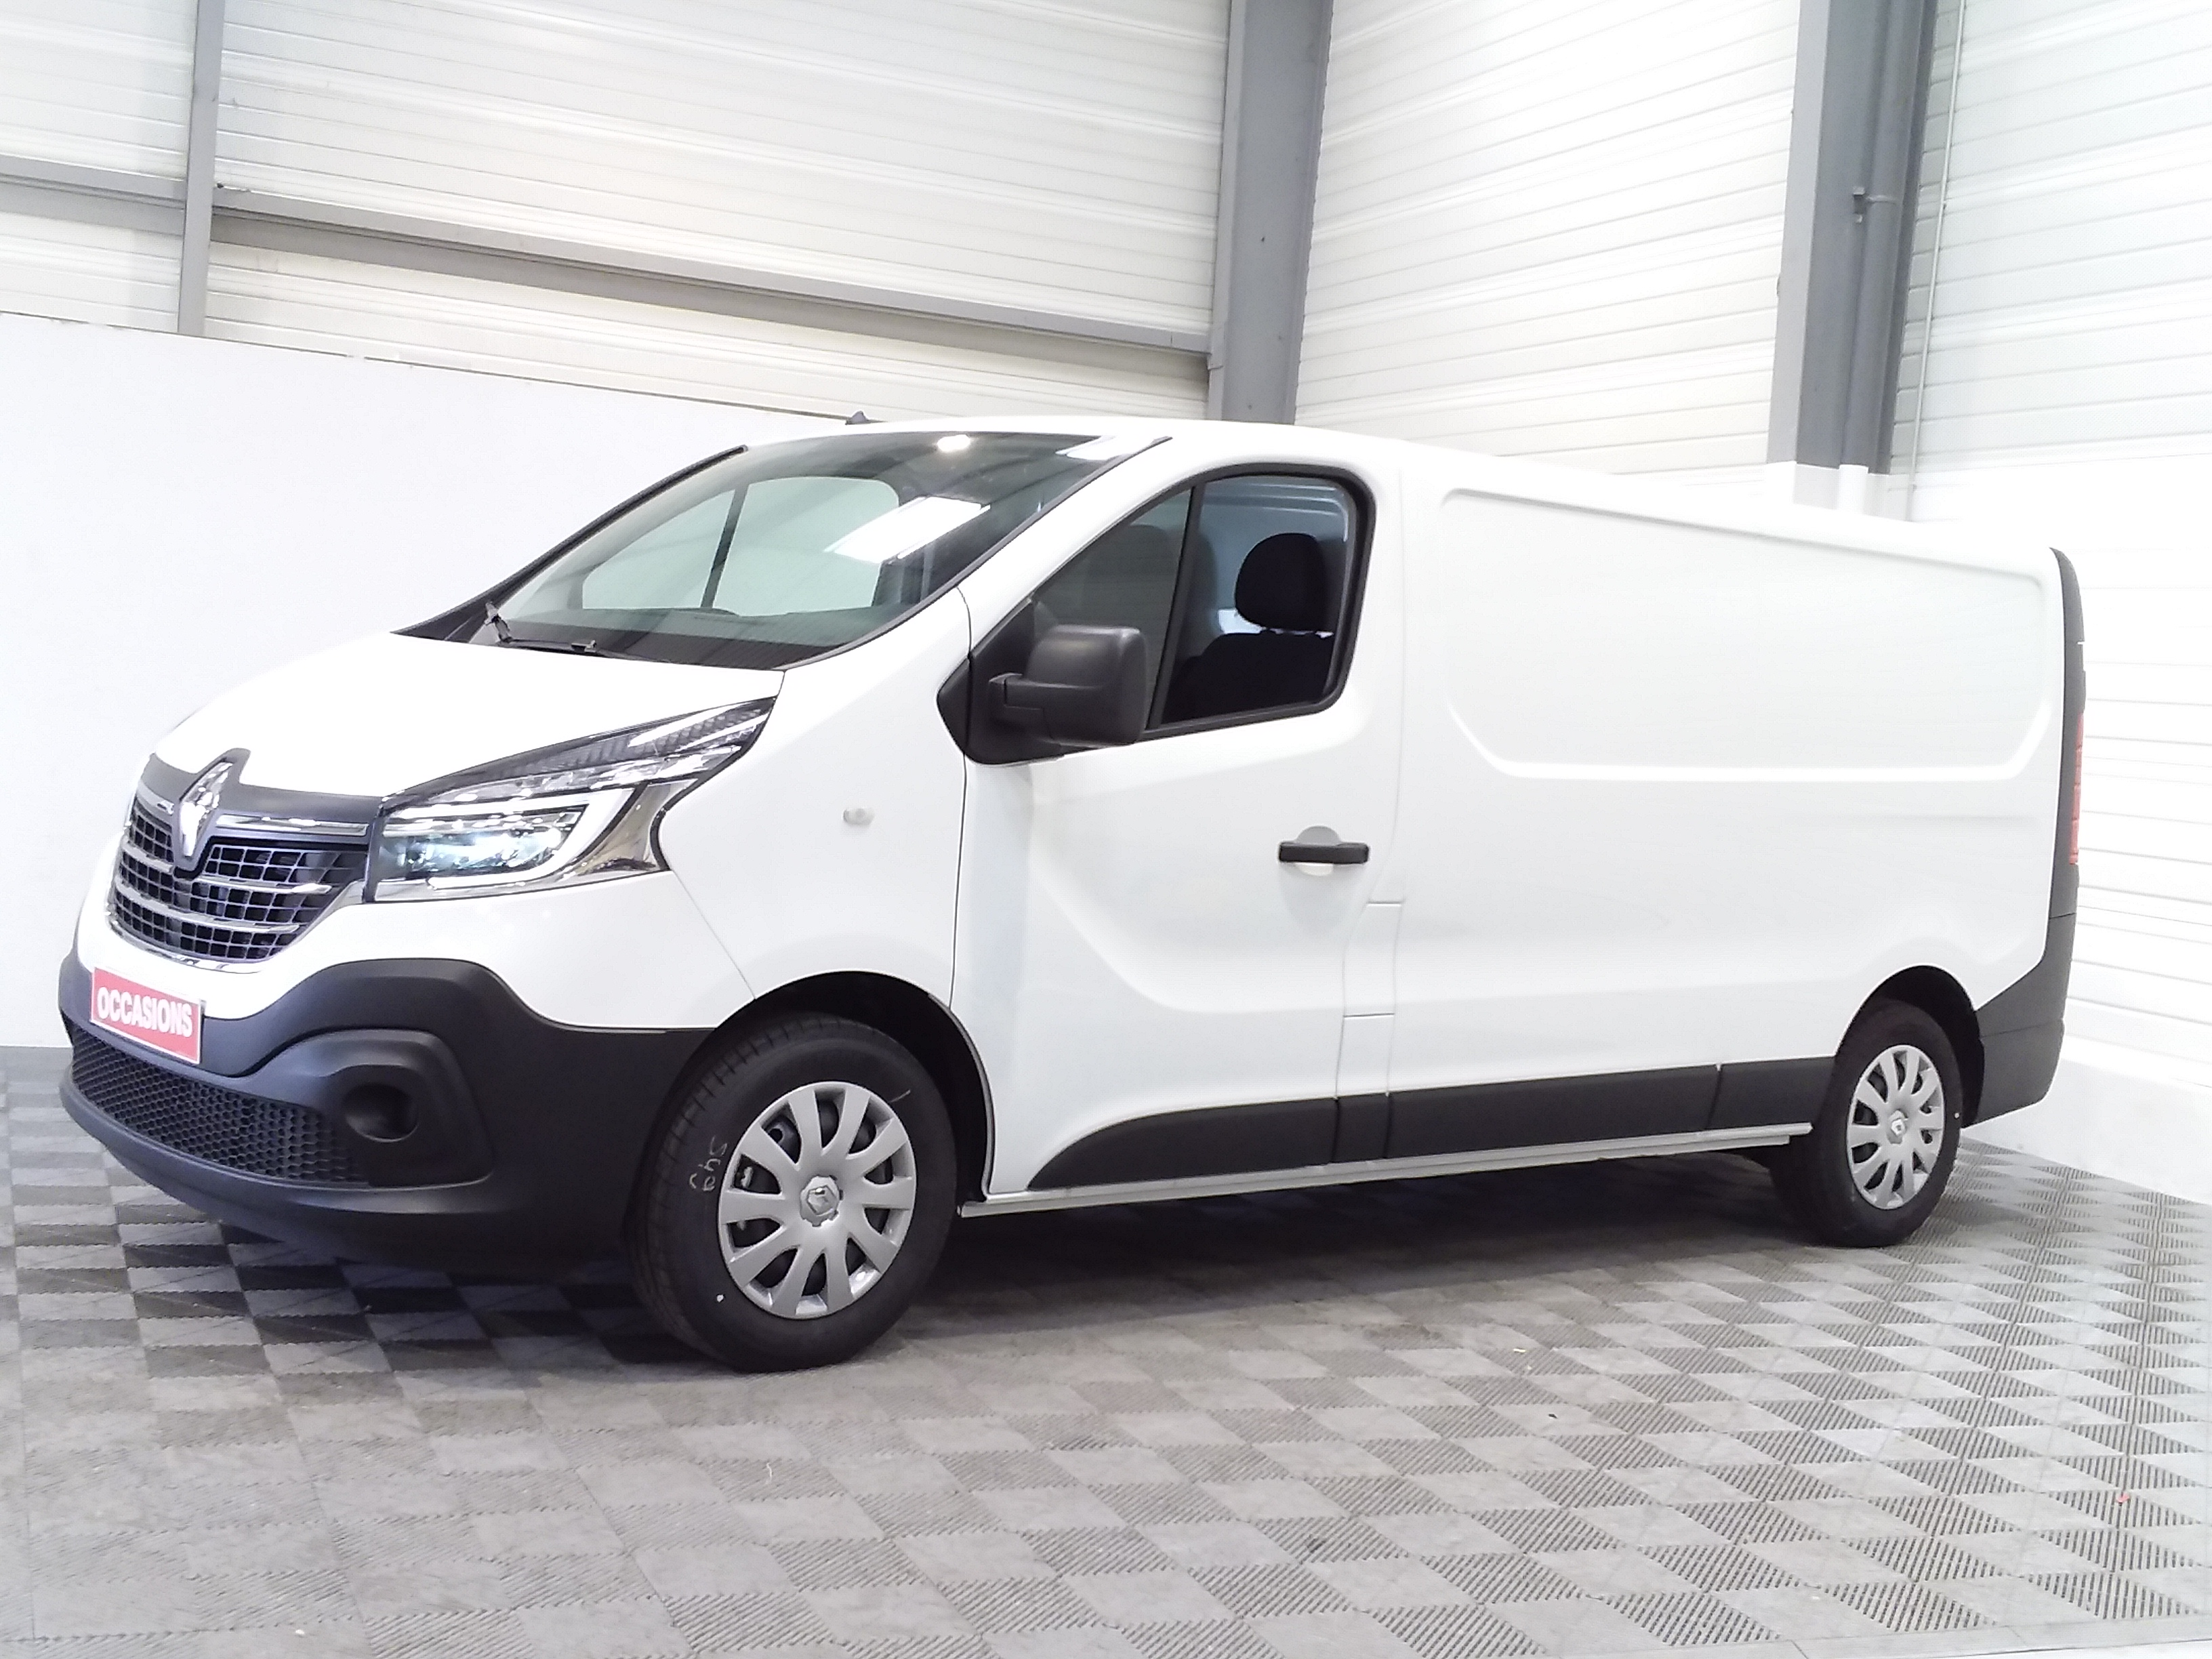 RENAULT TRAFIC FOURGON NV FG GCF L2H1 1300 dCi 120 d'occasion